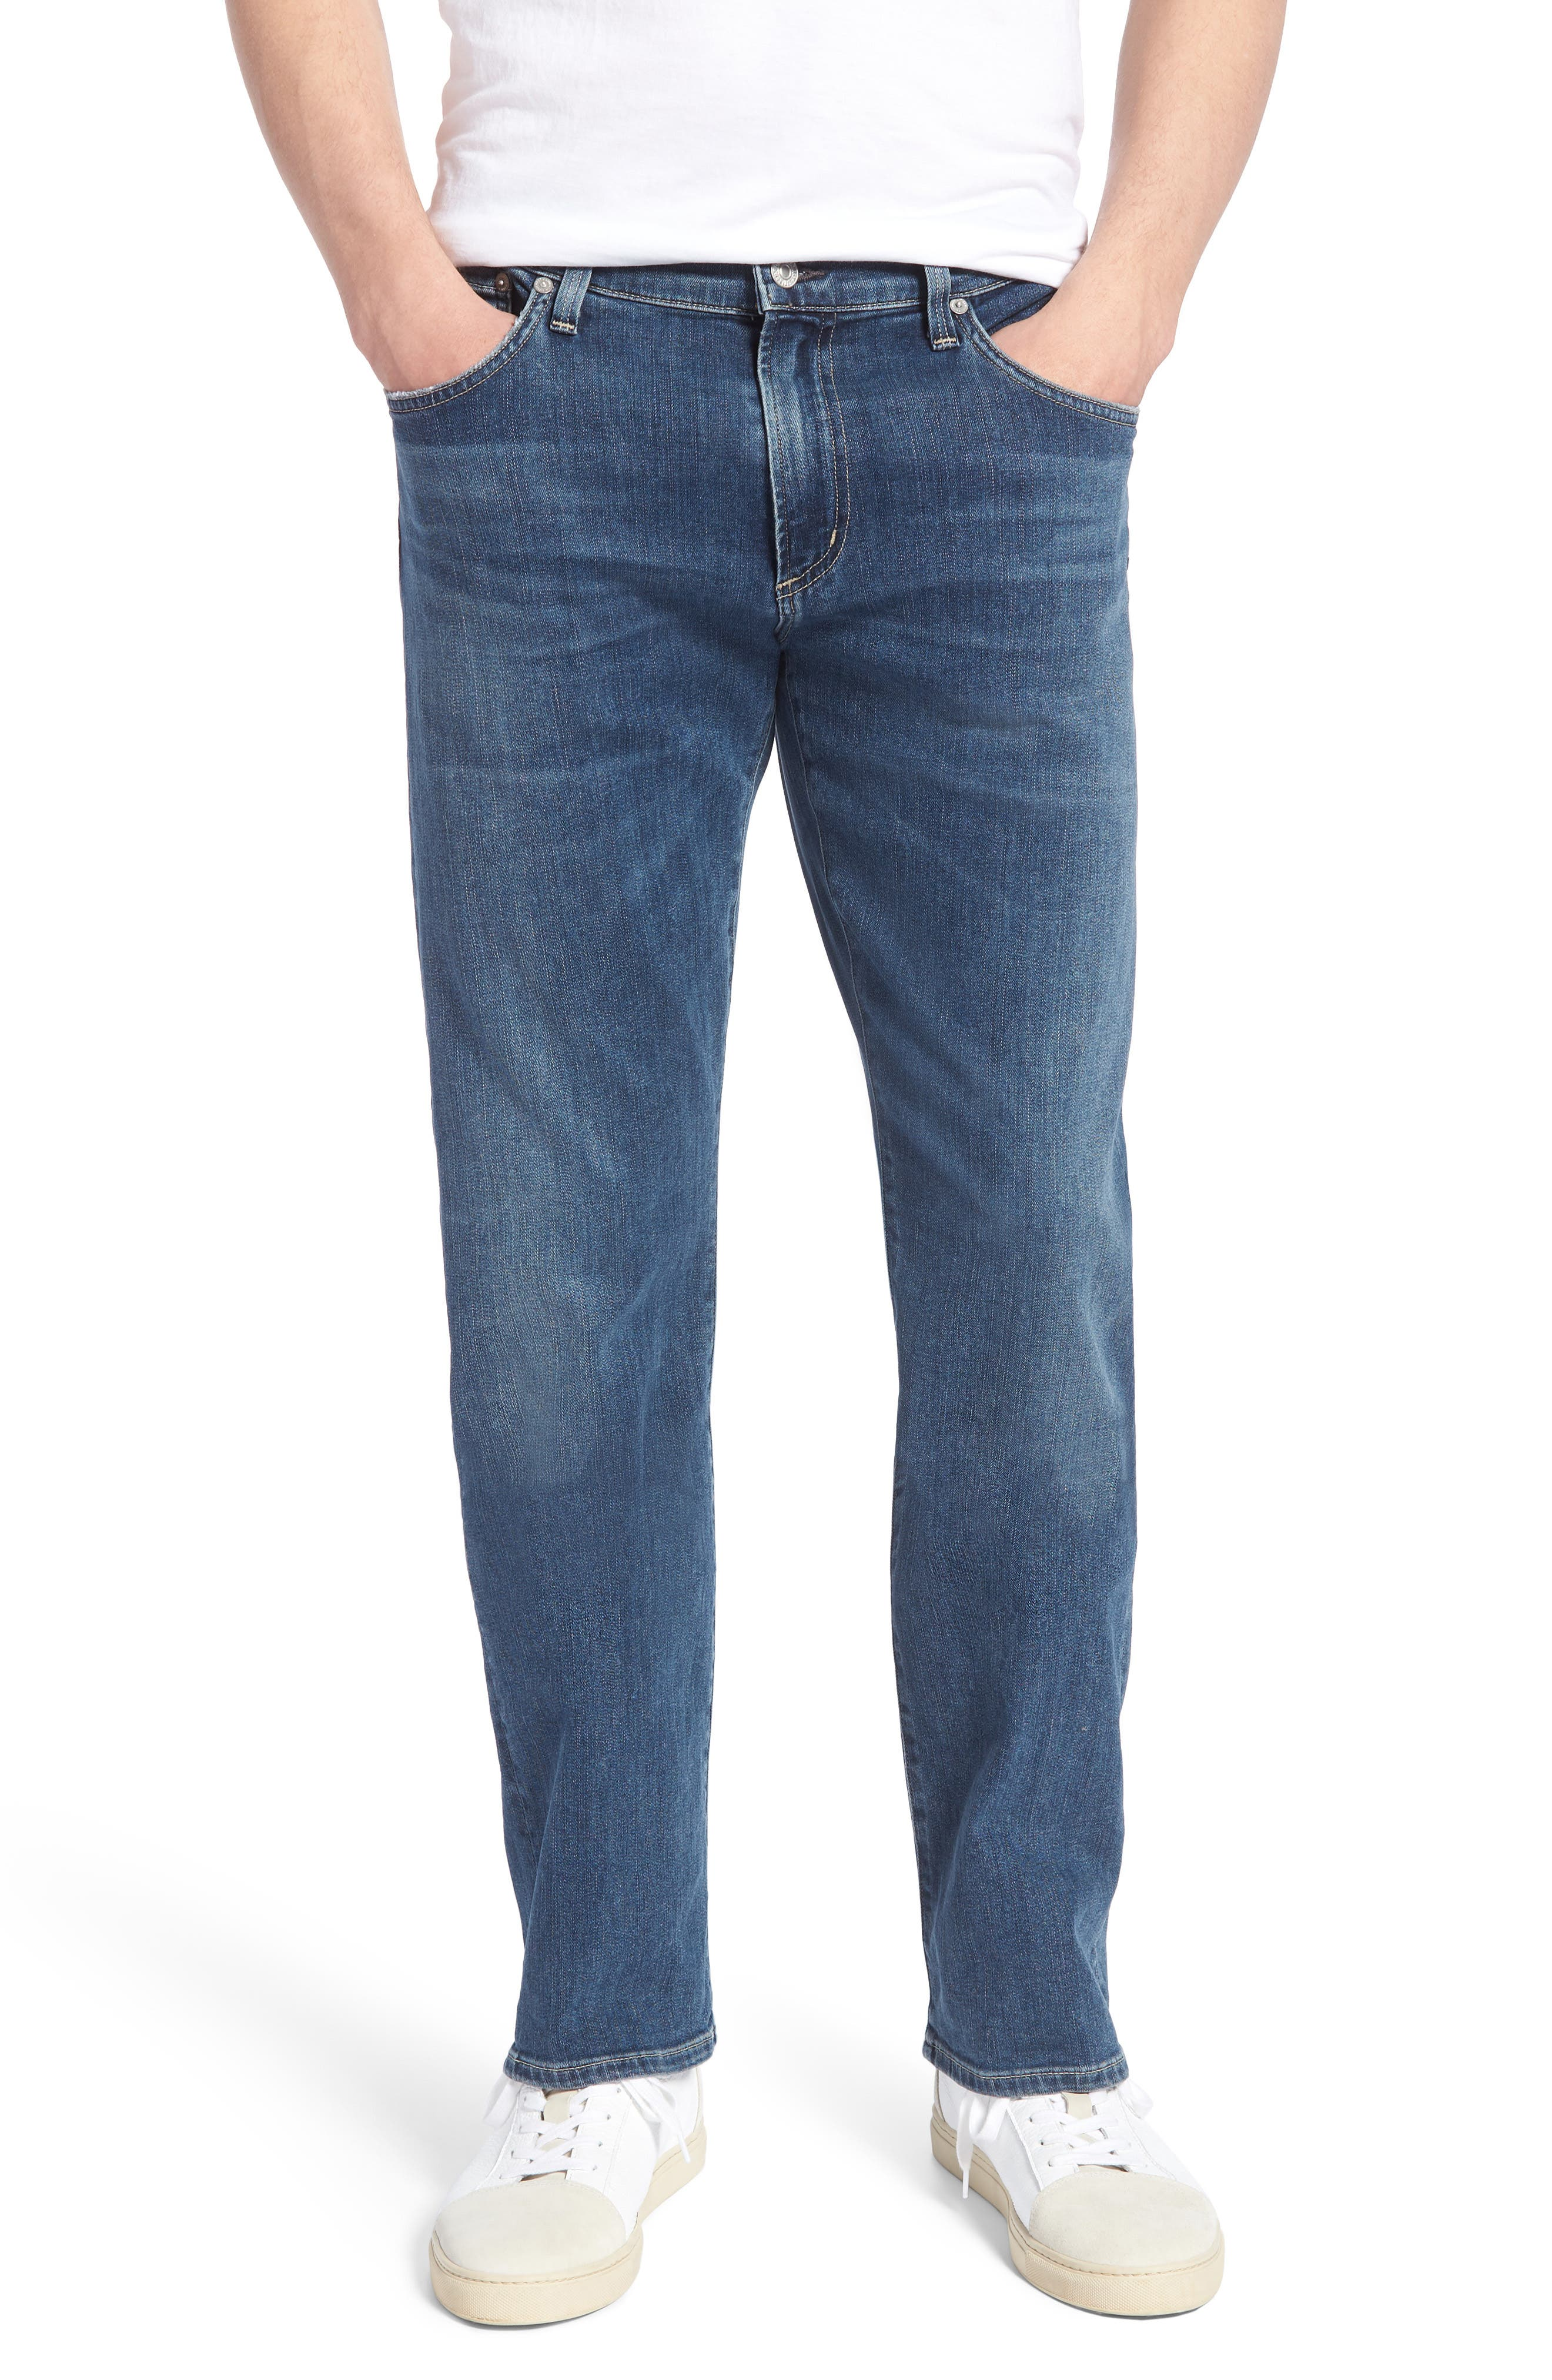 Gage Slim Straight Fit Jeans,                             Main thumbnail 1, color,                             427